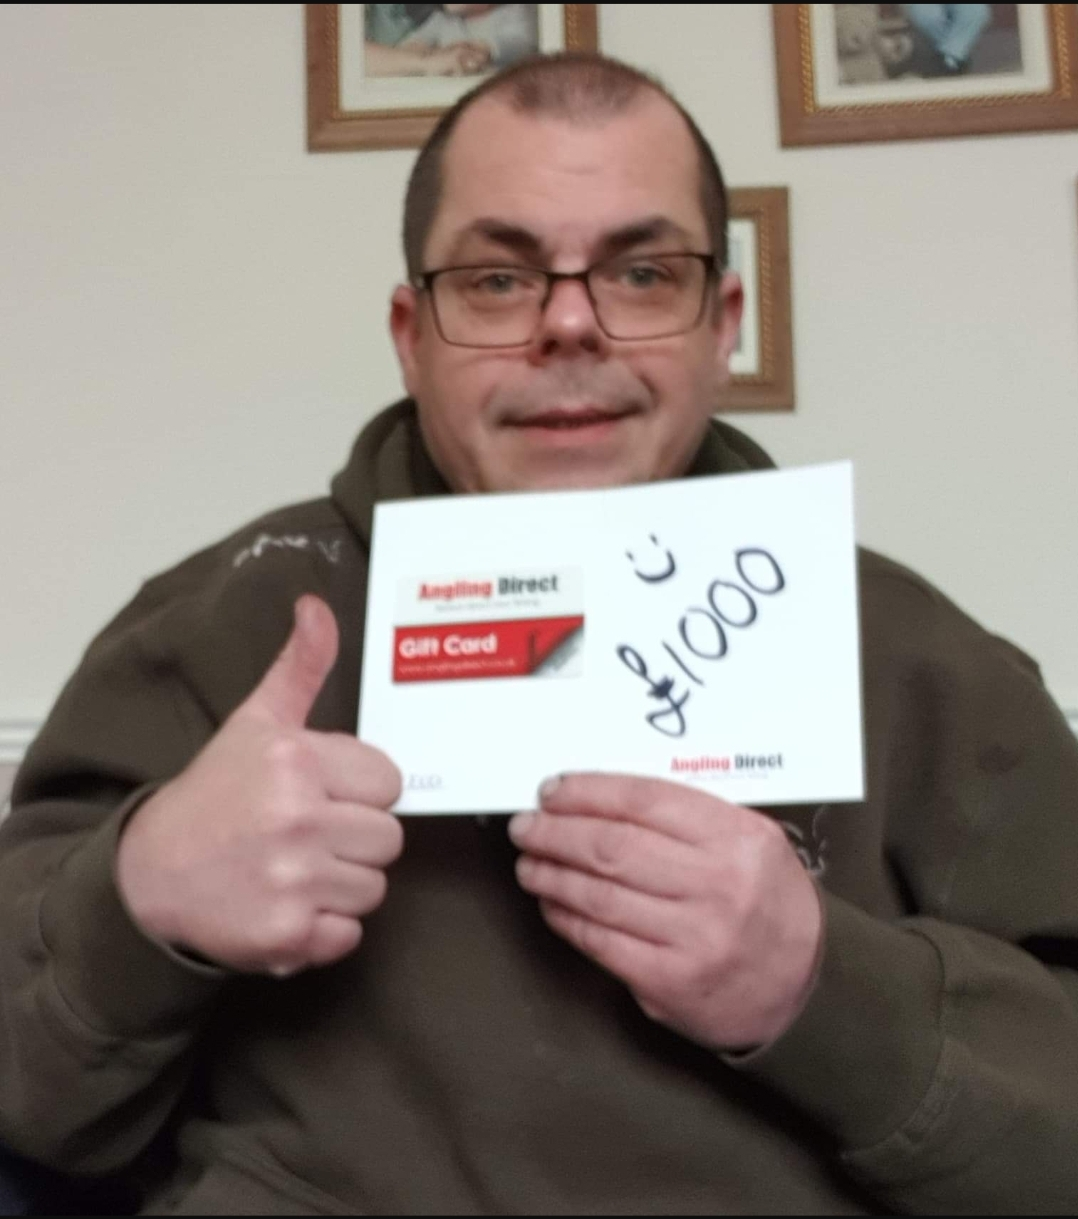 Andrew Blissett wins £1,000.00 Angling Direct Voucher!